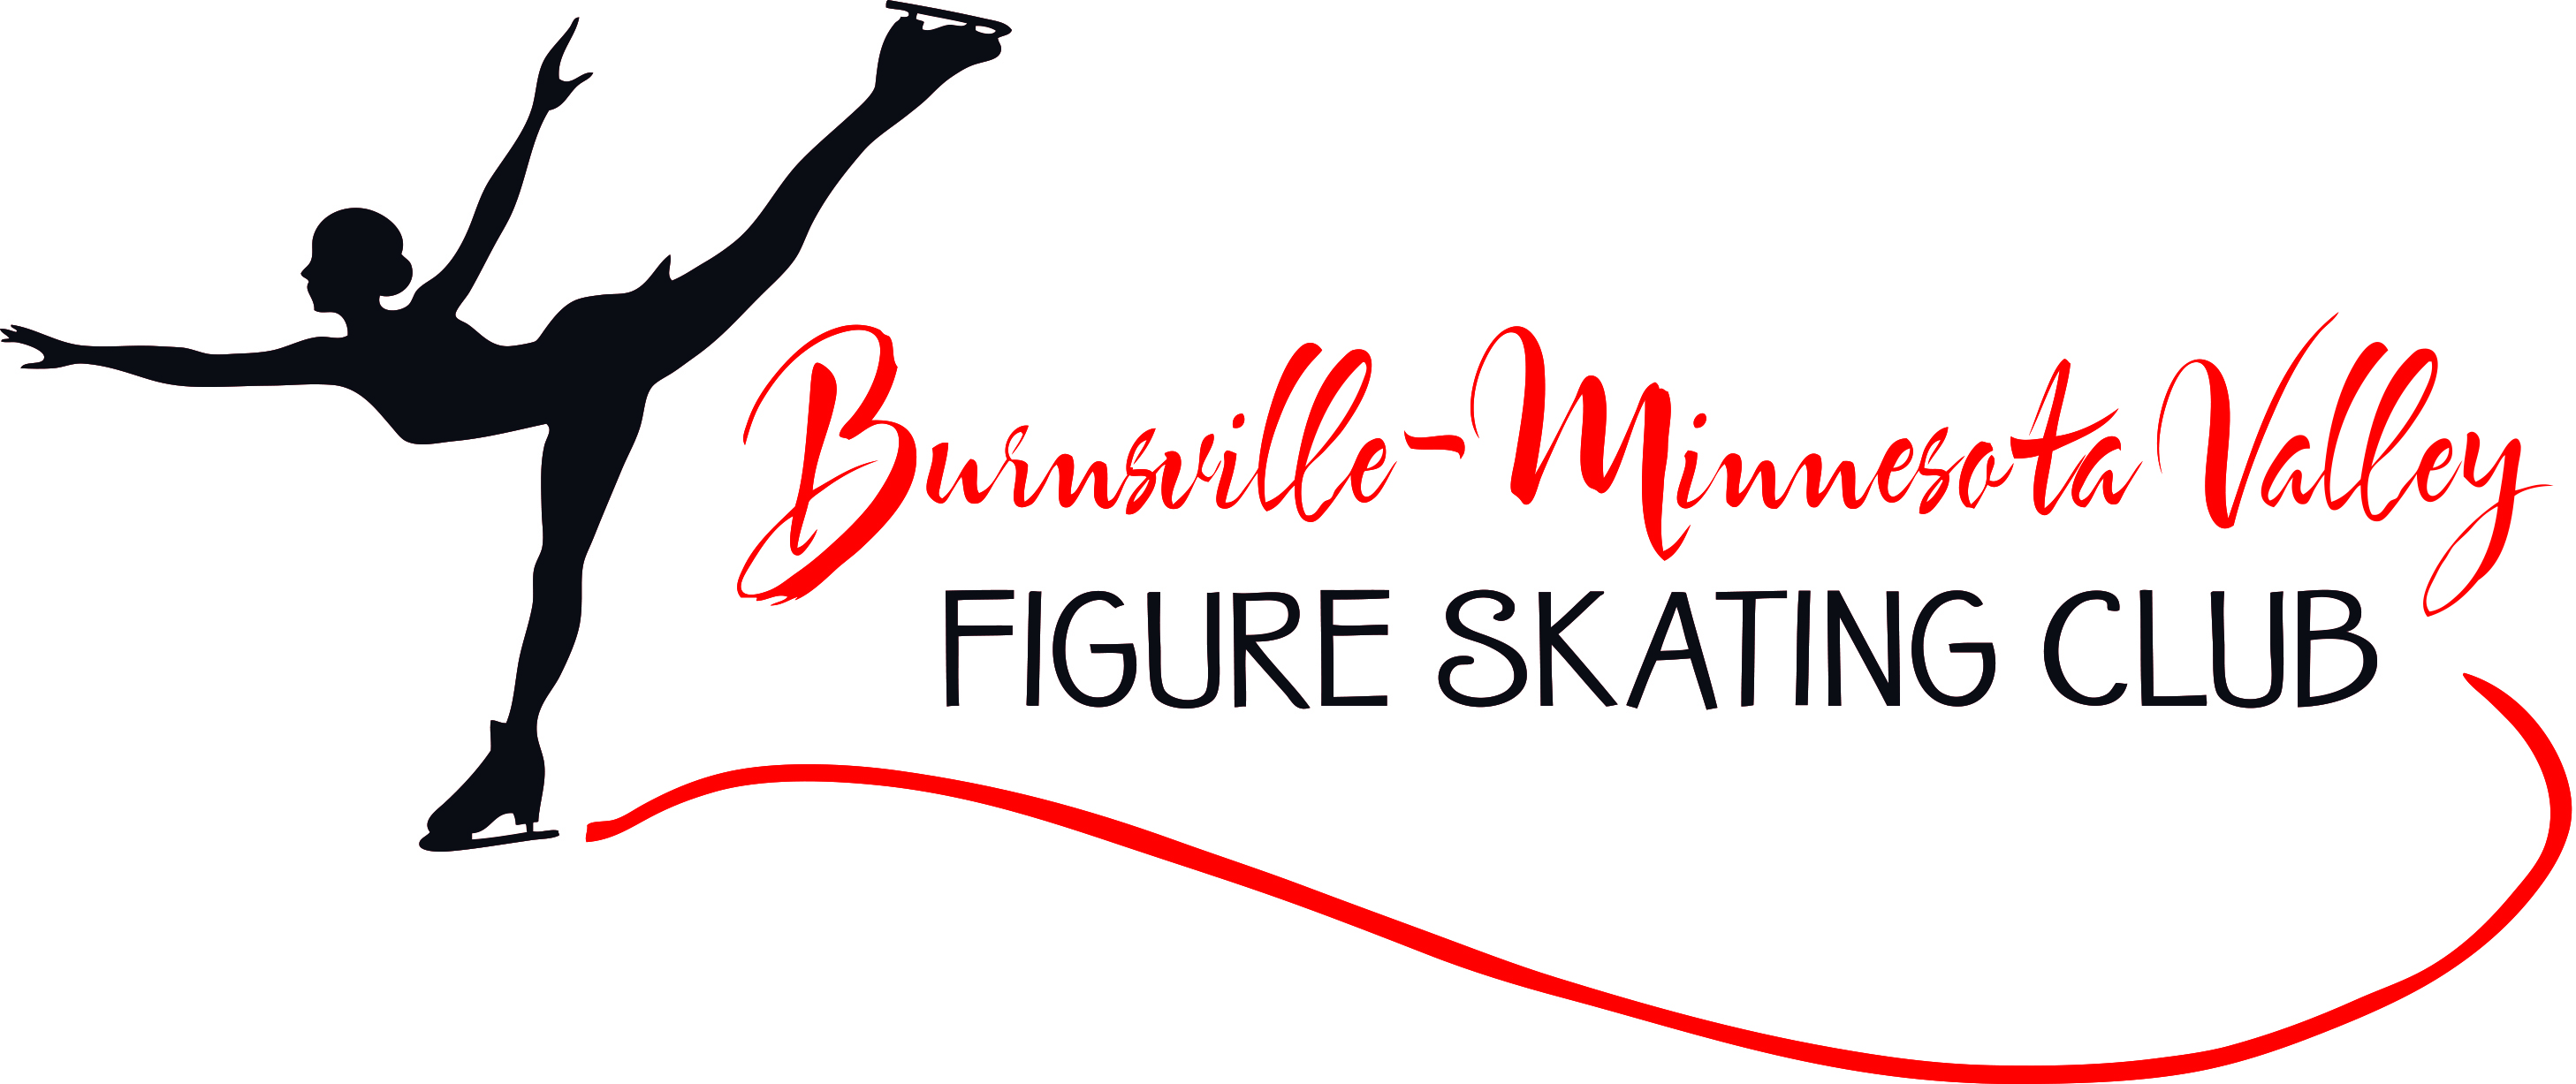 Burnsville Minnesota Valley Figure Skating Club logo